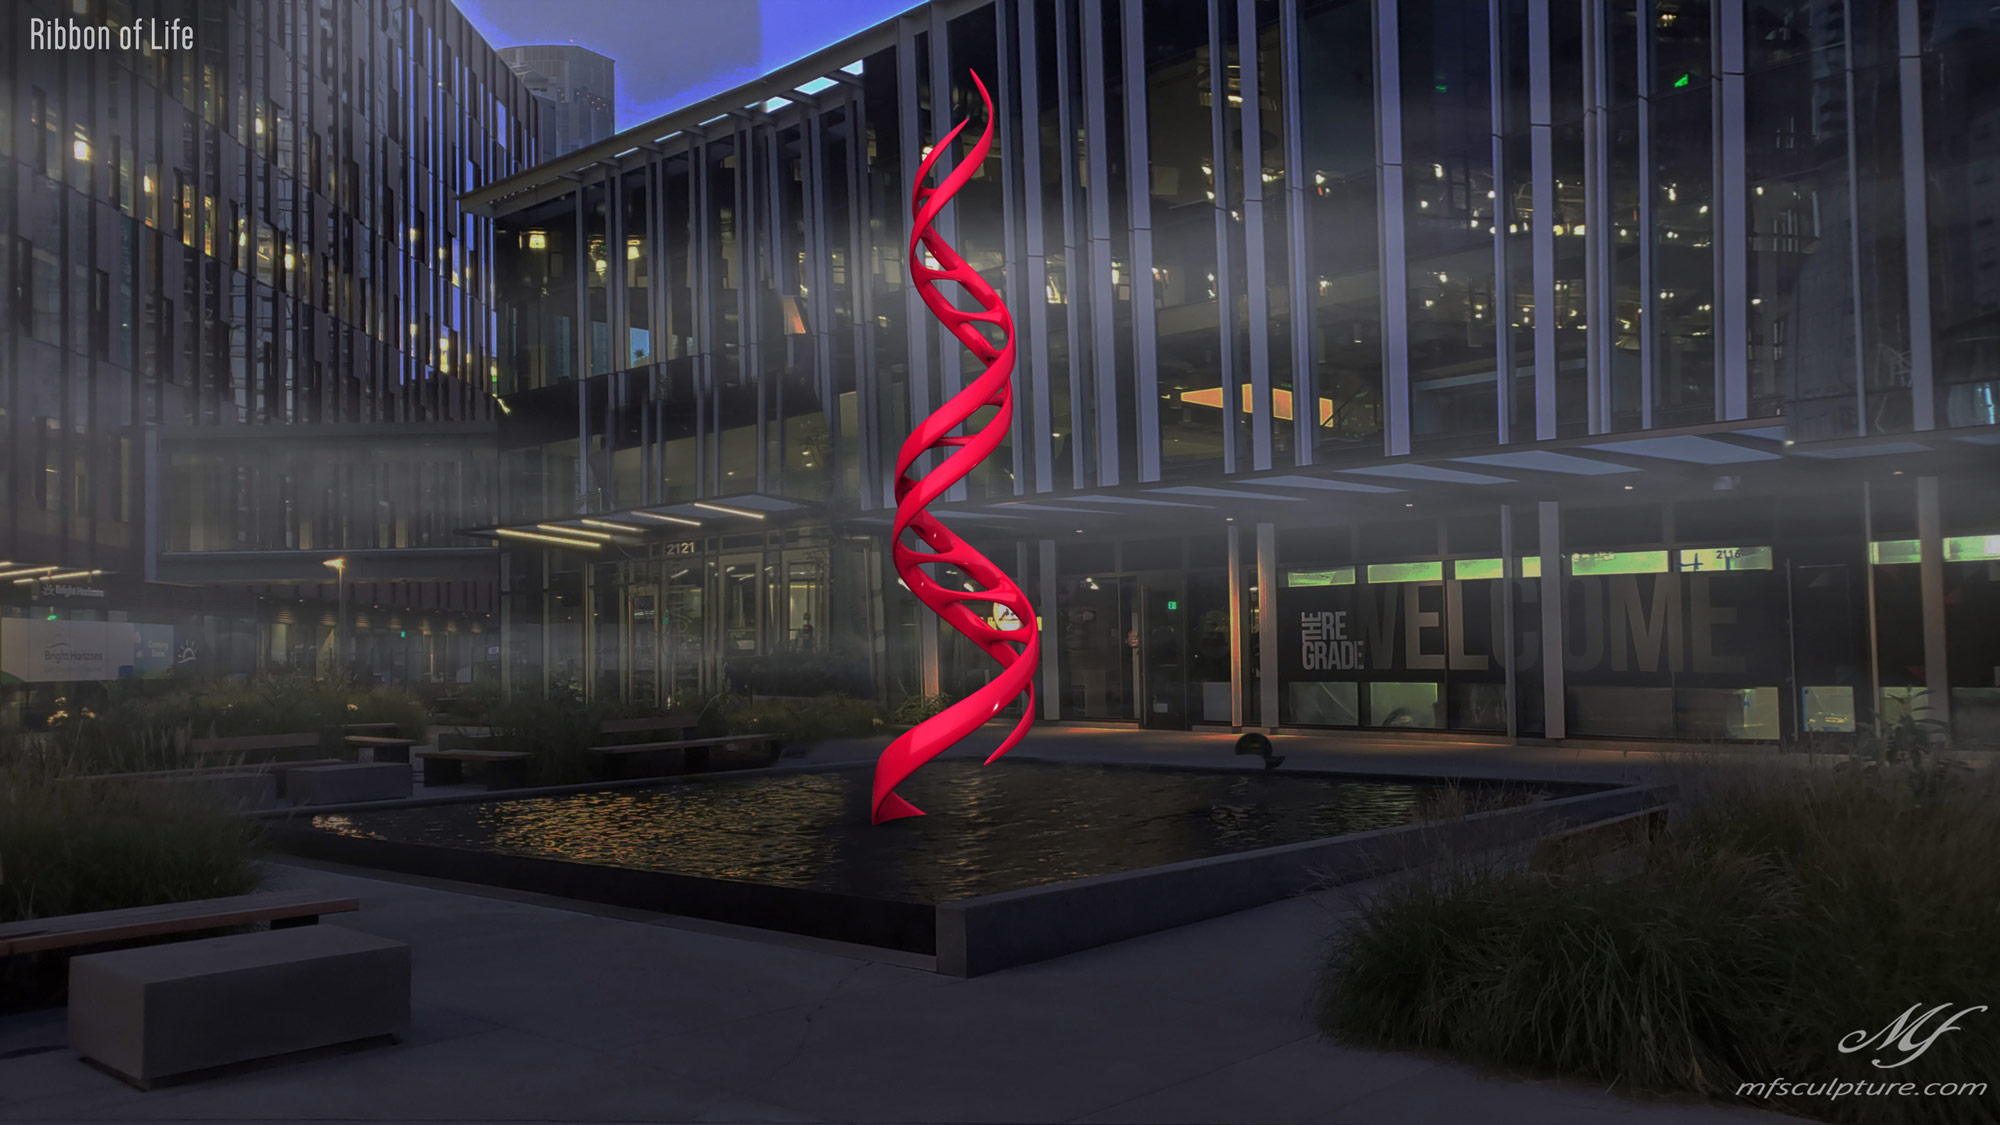 DNA Double Helix Sculpture Contemporary Biology 4